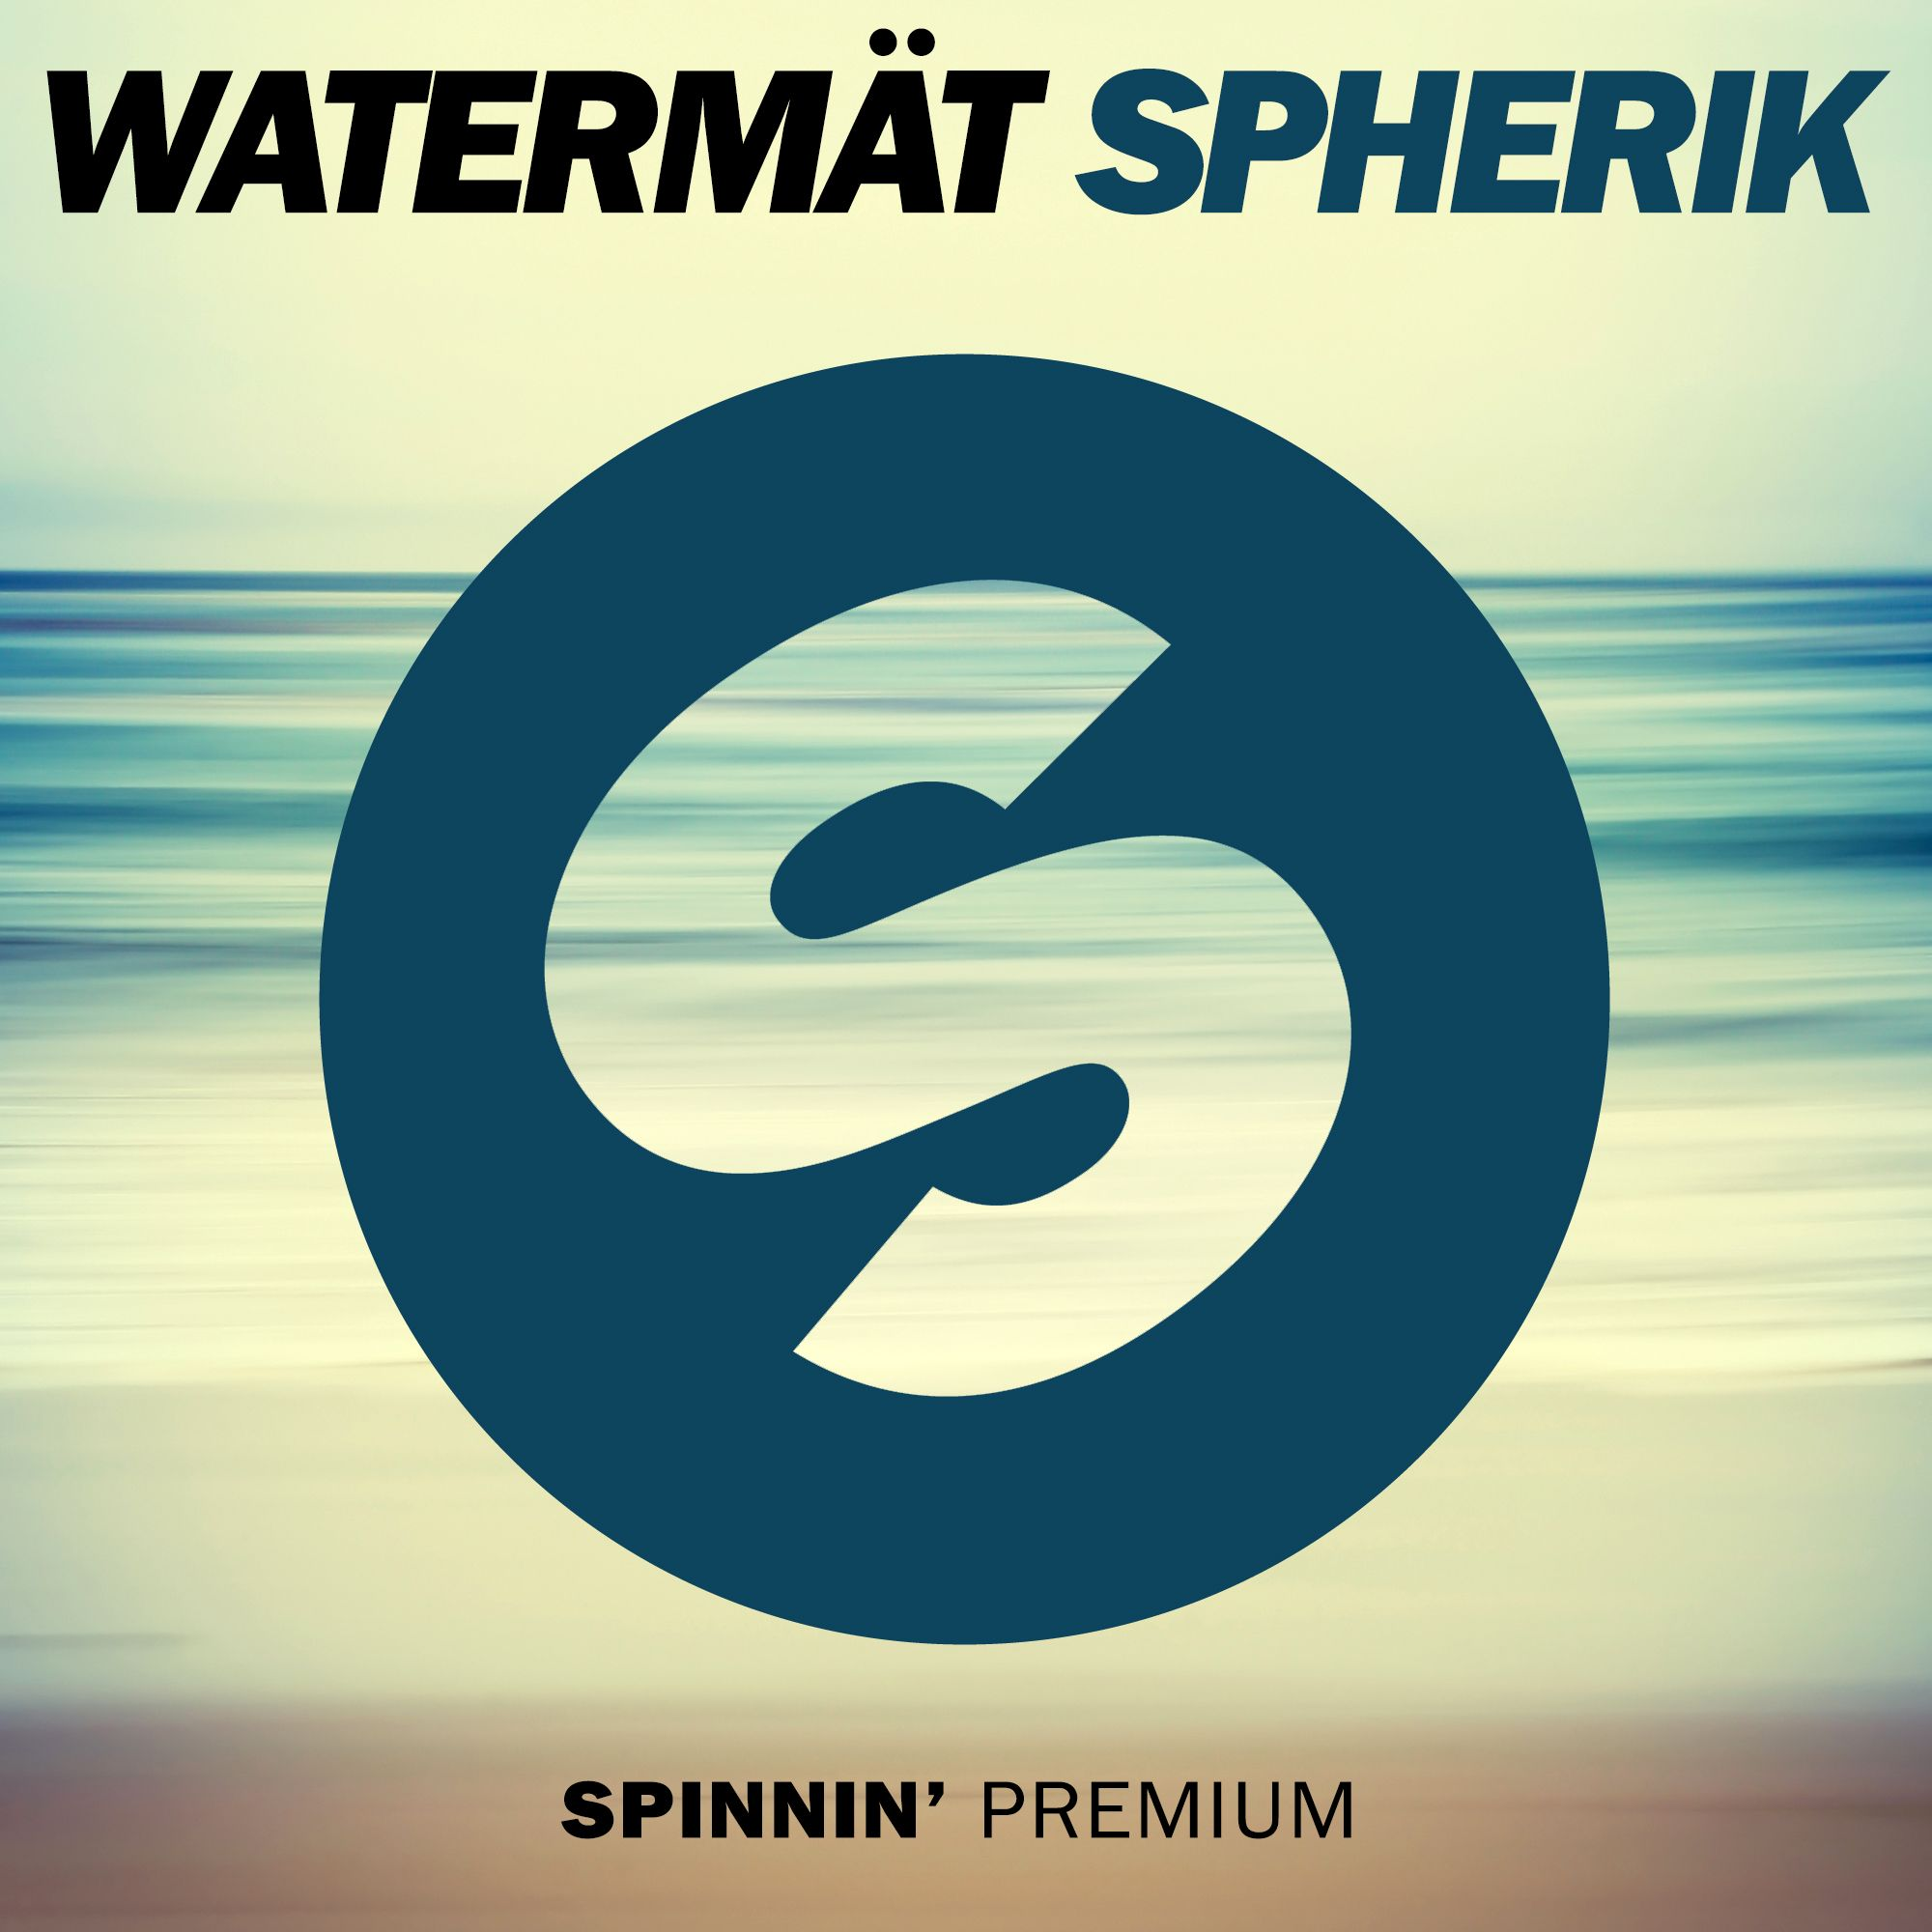 premium_watermat_-_spherik.jpg